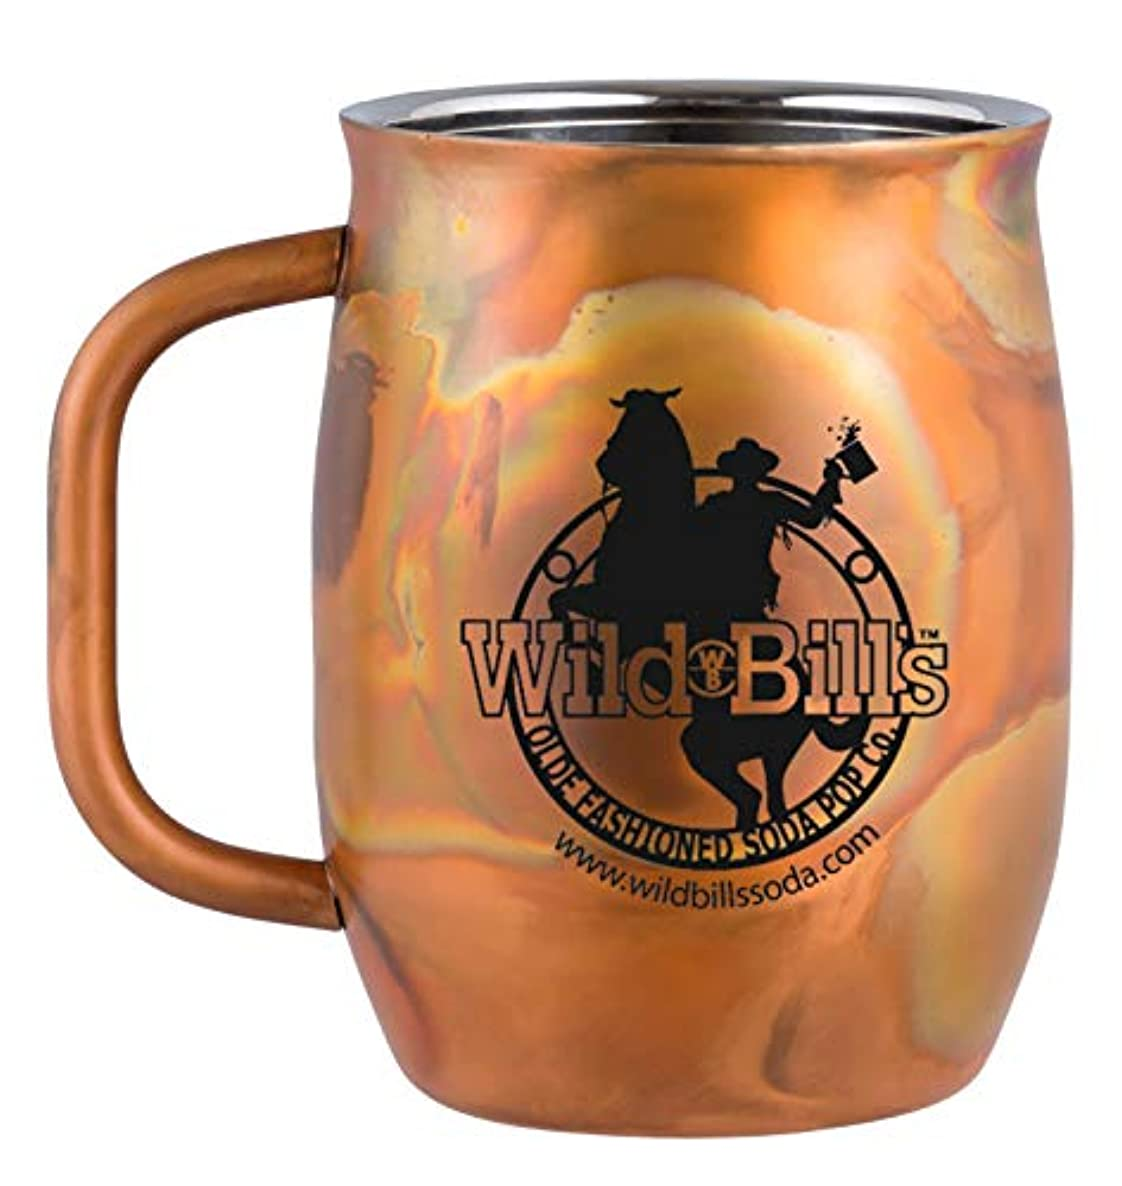 Wild Bill's Soda Insulated, Double Wall, Vacuum Sealed, Stainless Steel Mug - Rustic, Antique Copper Finish - 20 OZ, 2 Mugs/Case